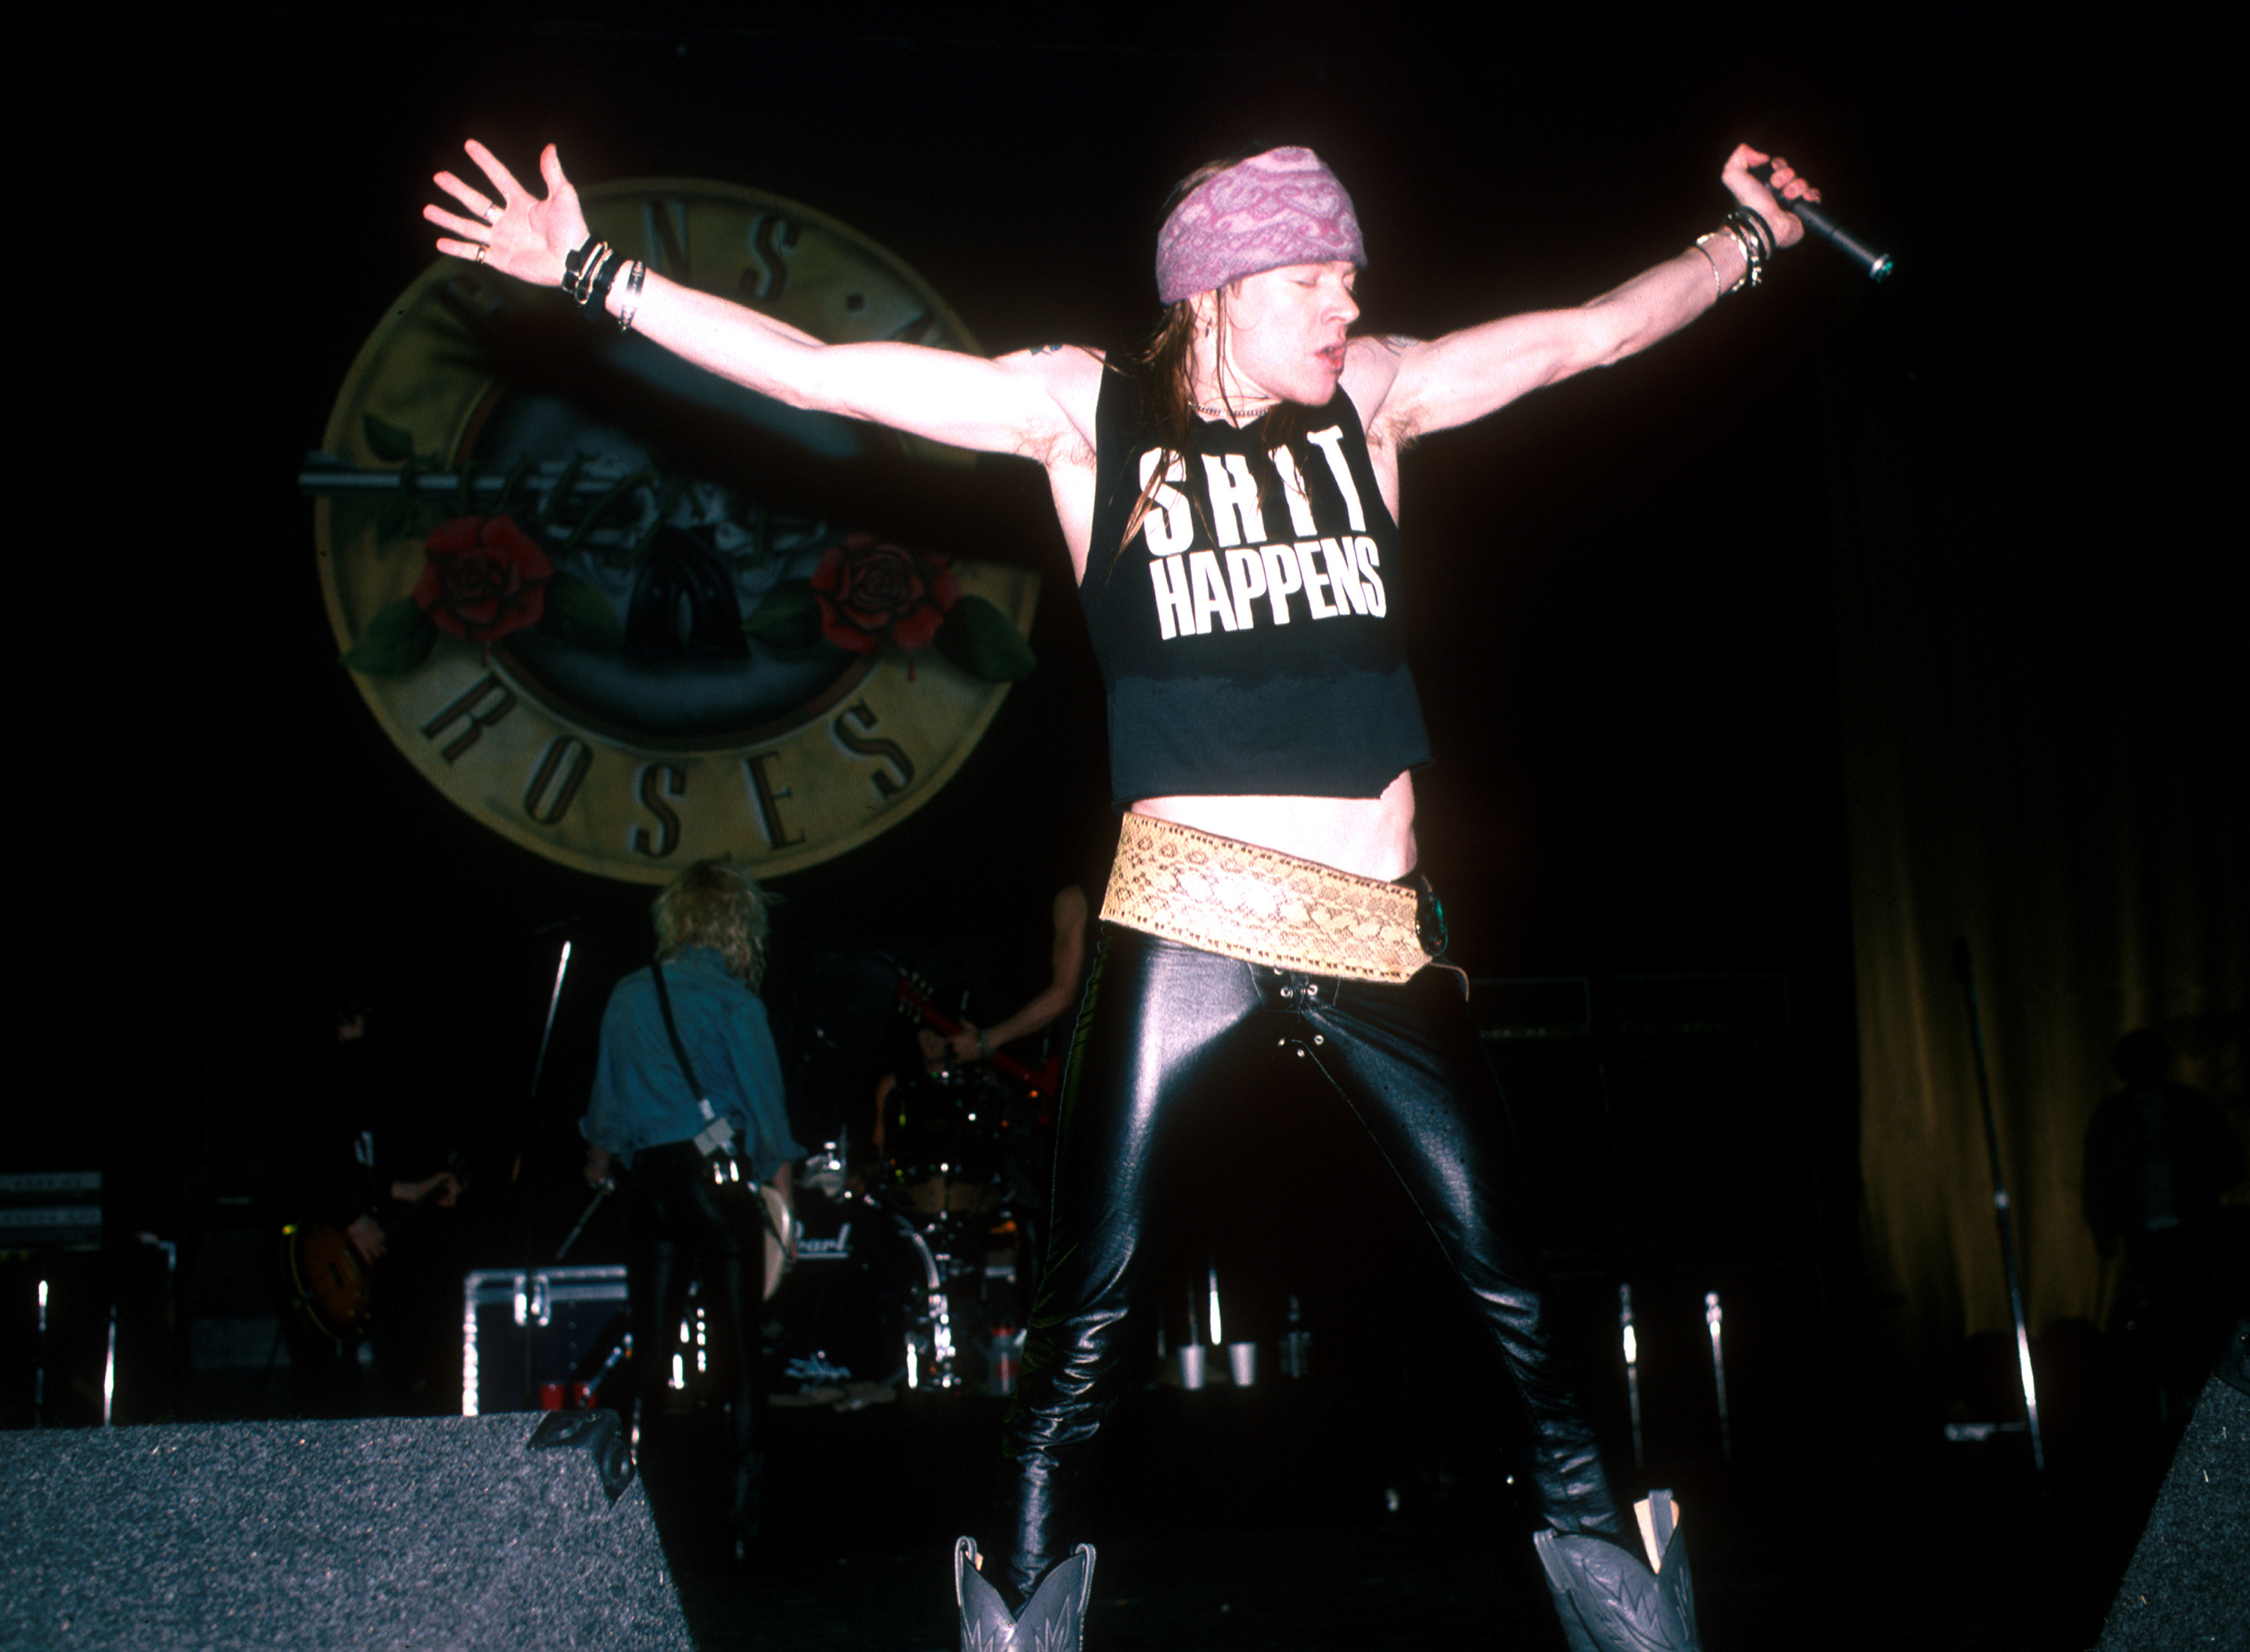 Axl Rose of Guns N' Roses in concert (Photo by Jeffrey Mayer/WireImage)